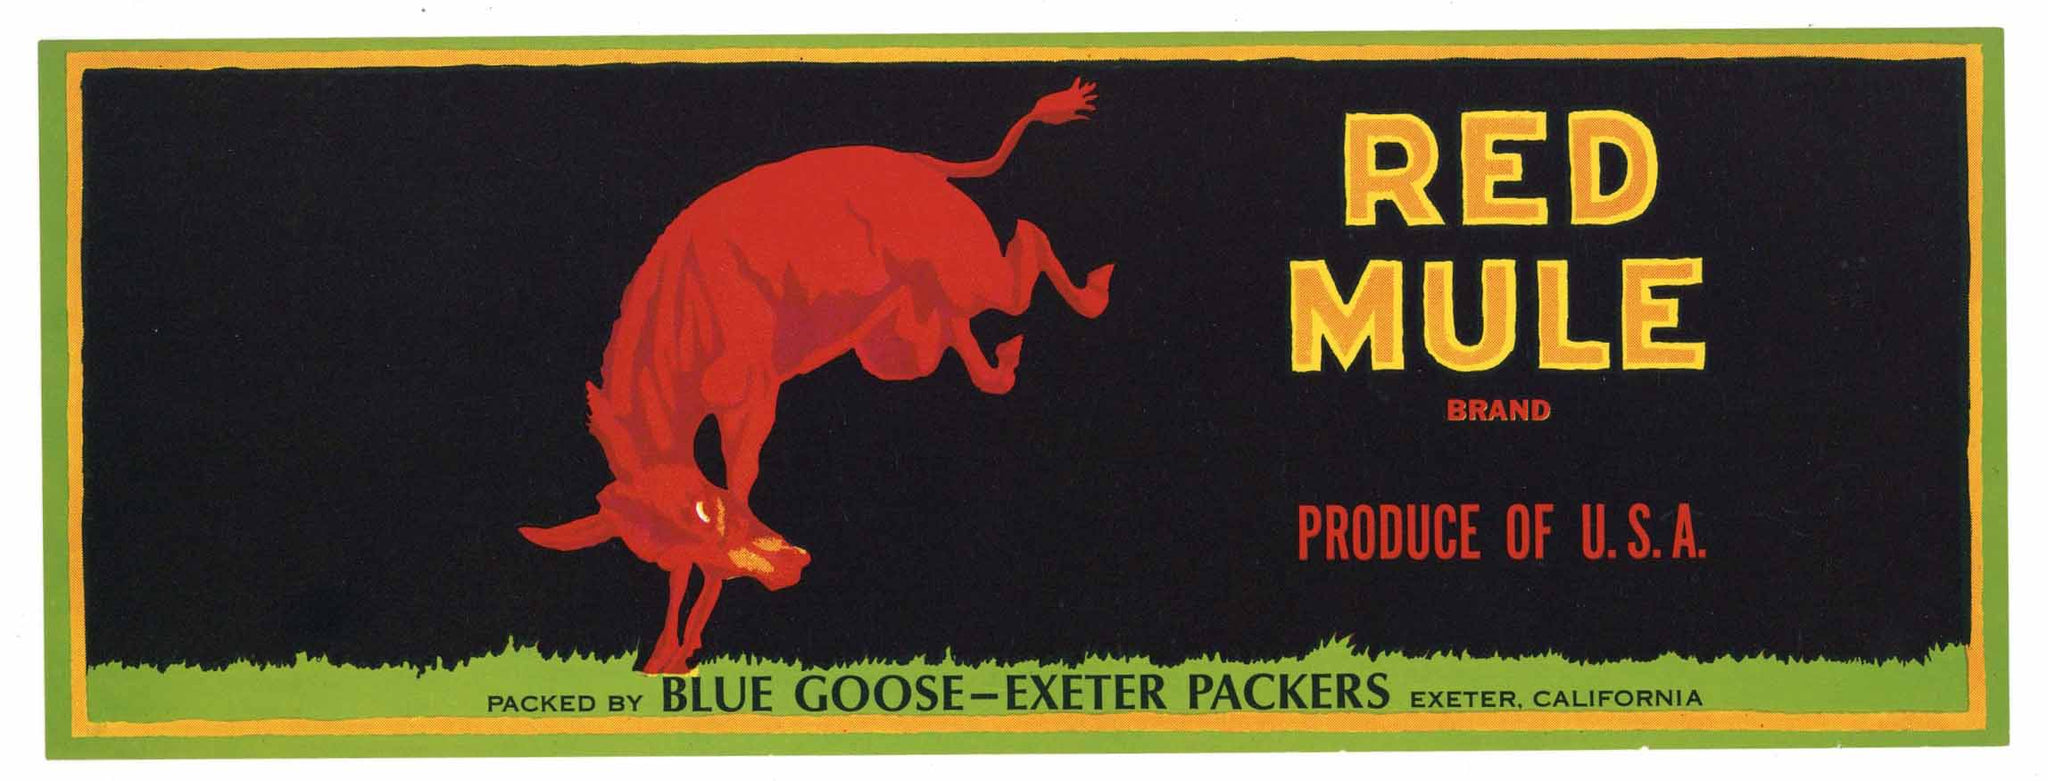 Red Mule Brand Vintage Fruit Crate Label